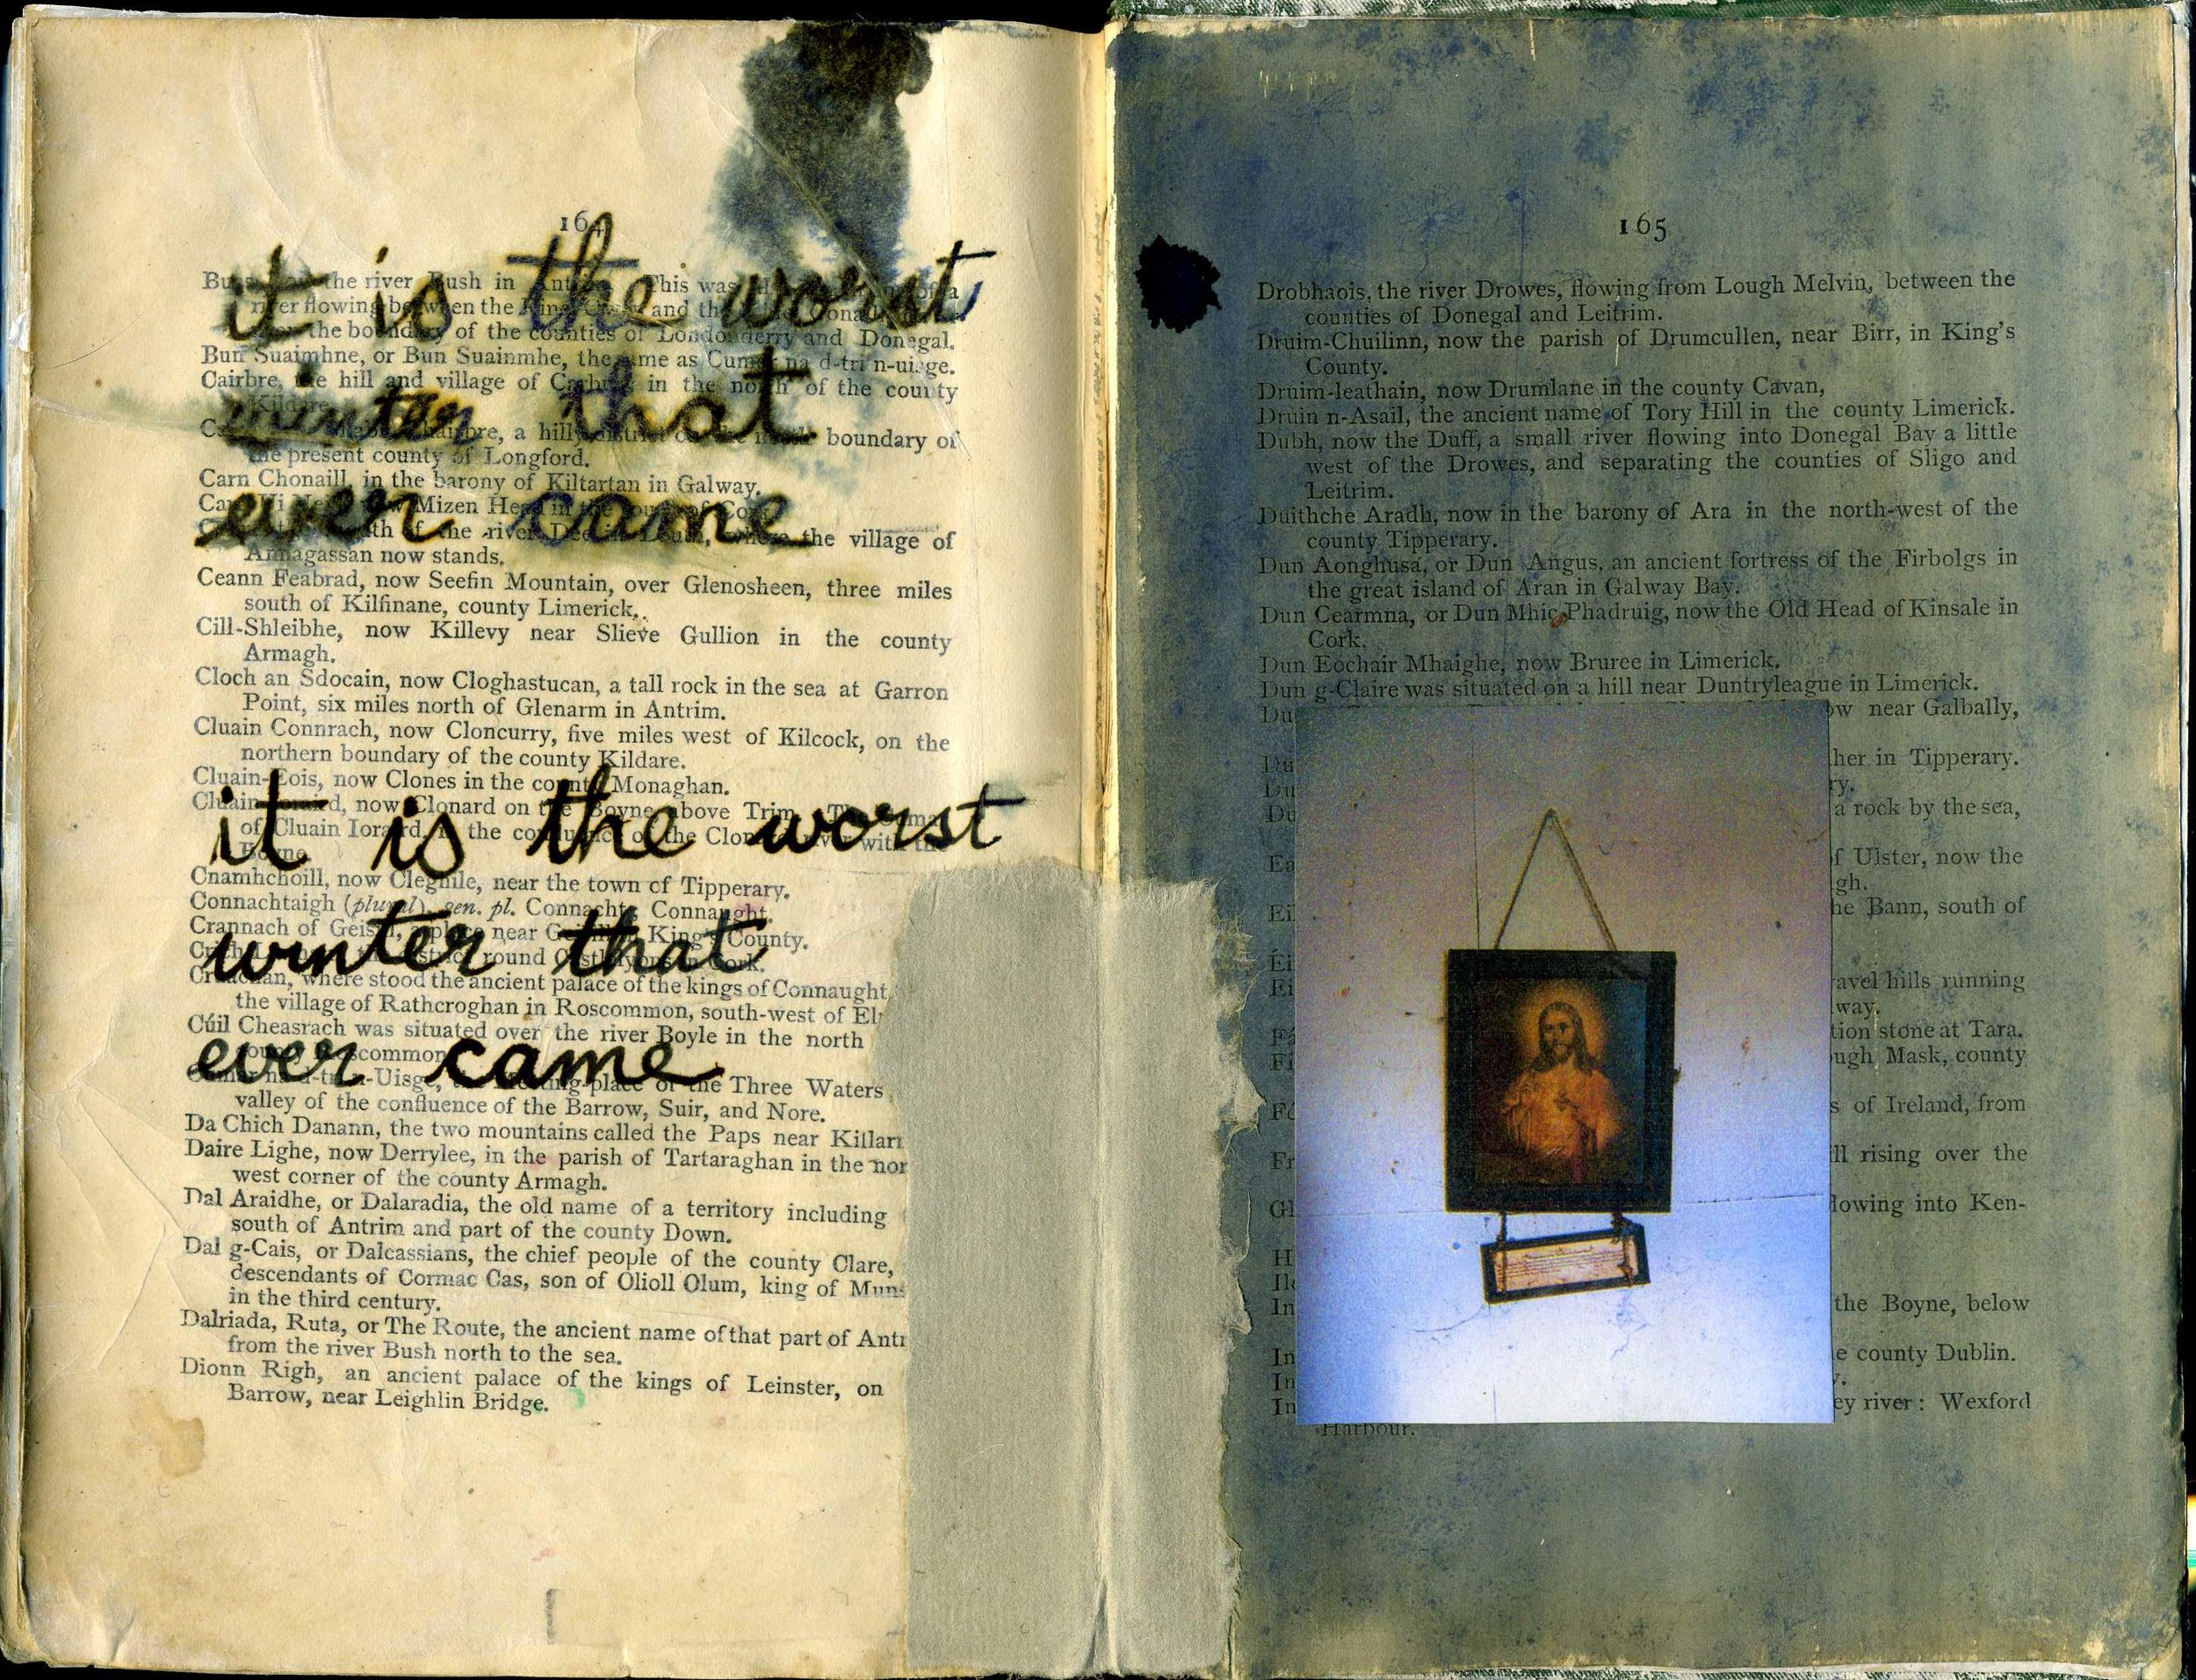 wendy-dison-altered-book-2010-detail.jpg